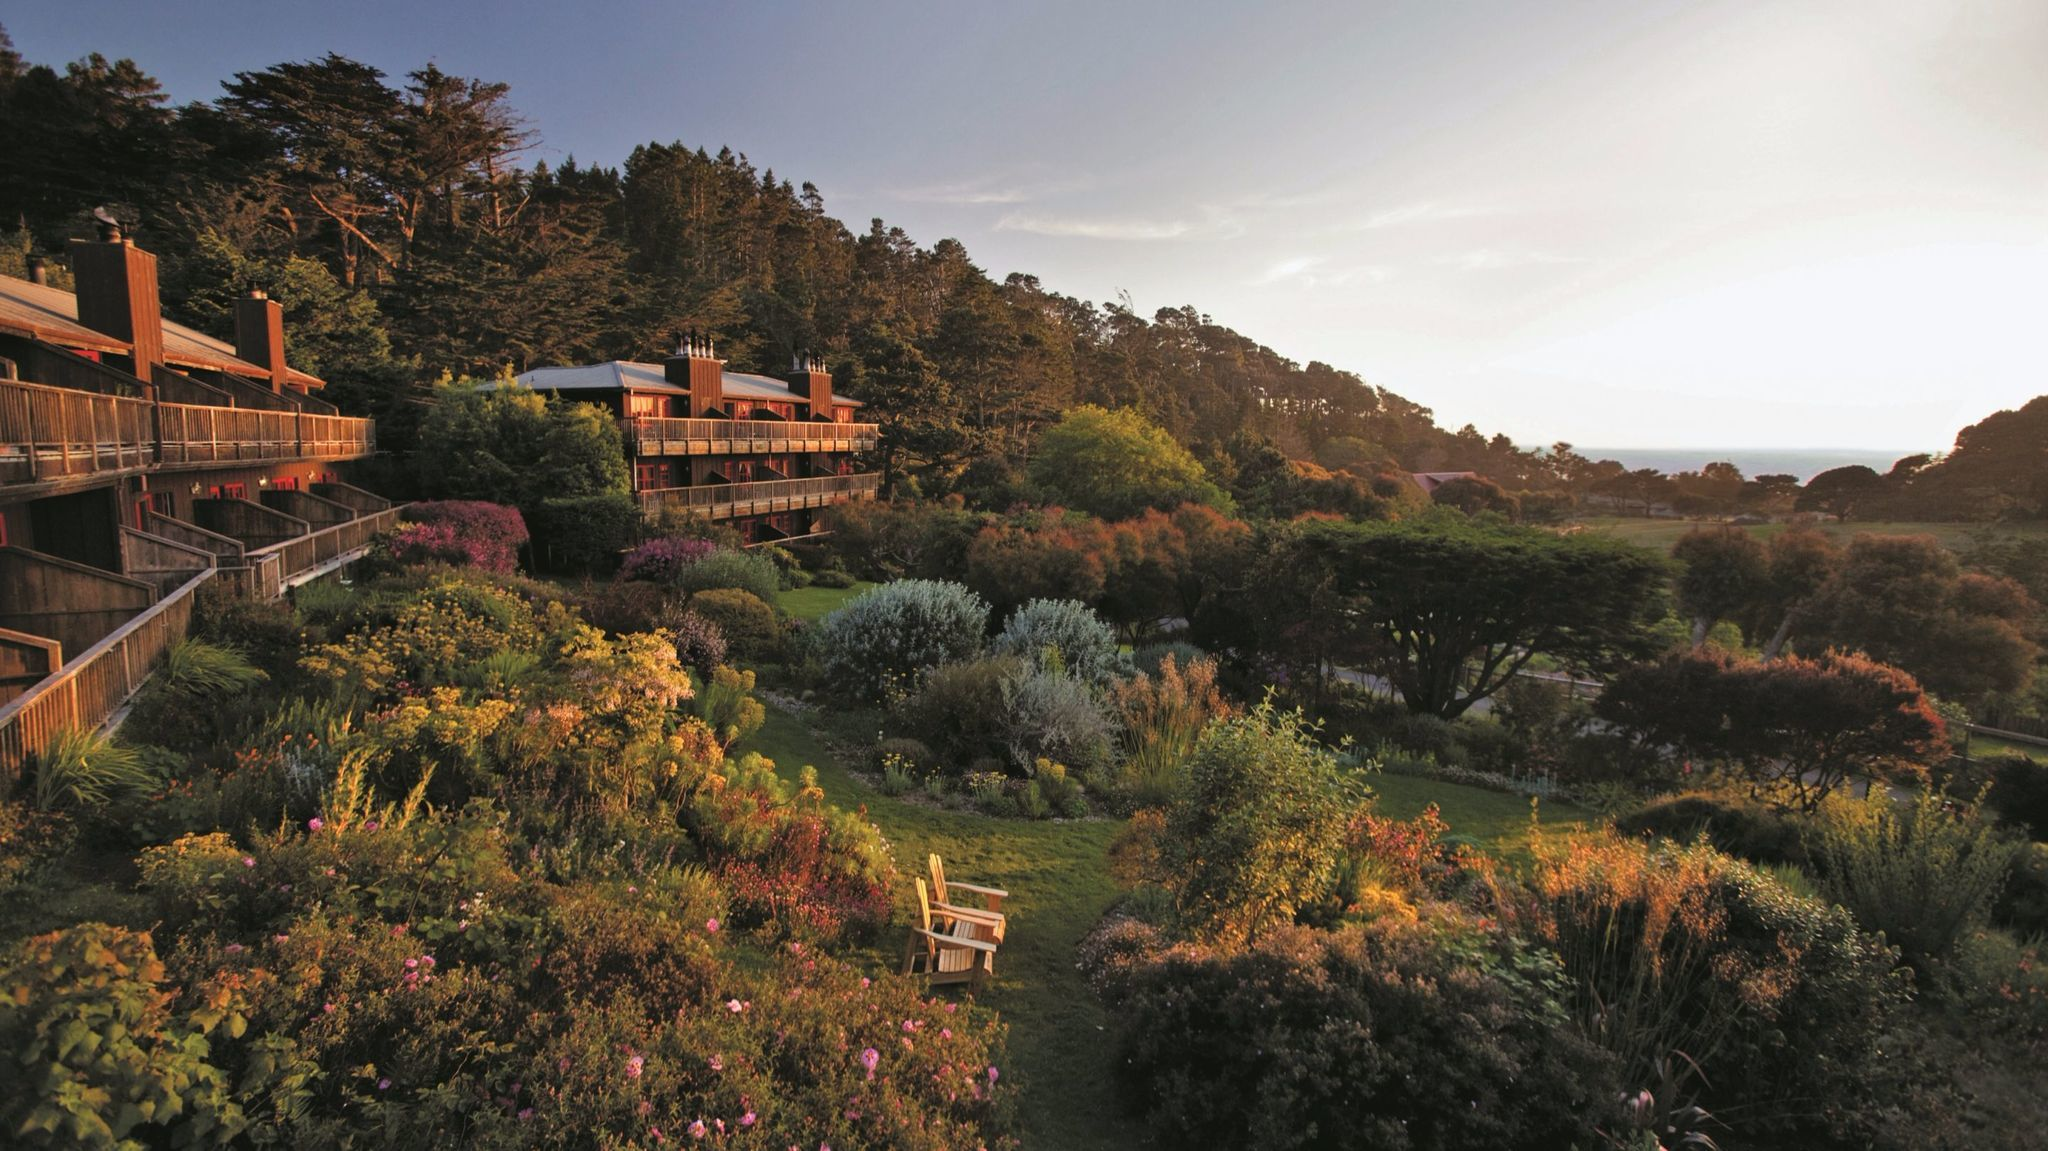 Ravens Restaurant is located in the Stanford Inn in Mendocino.